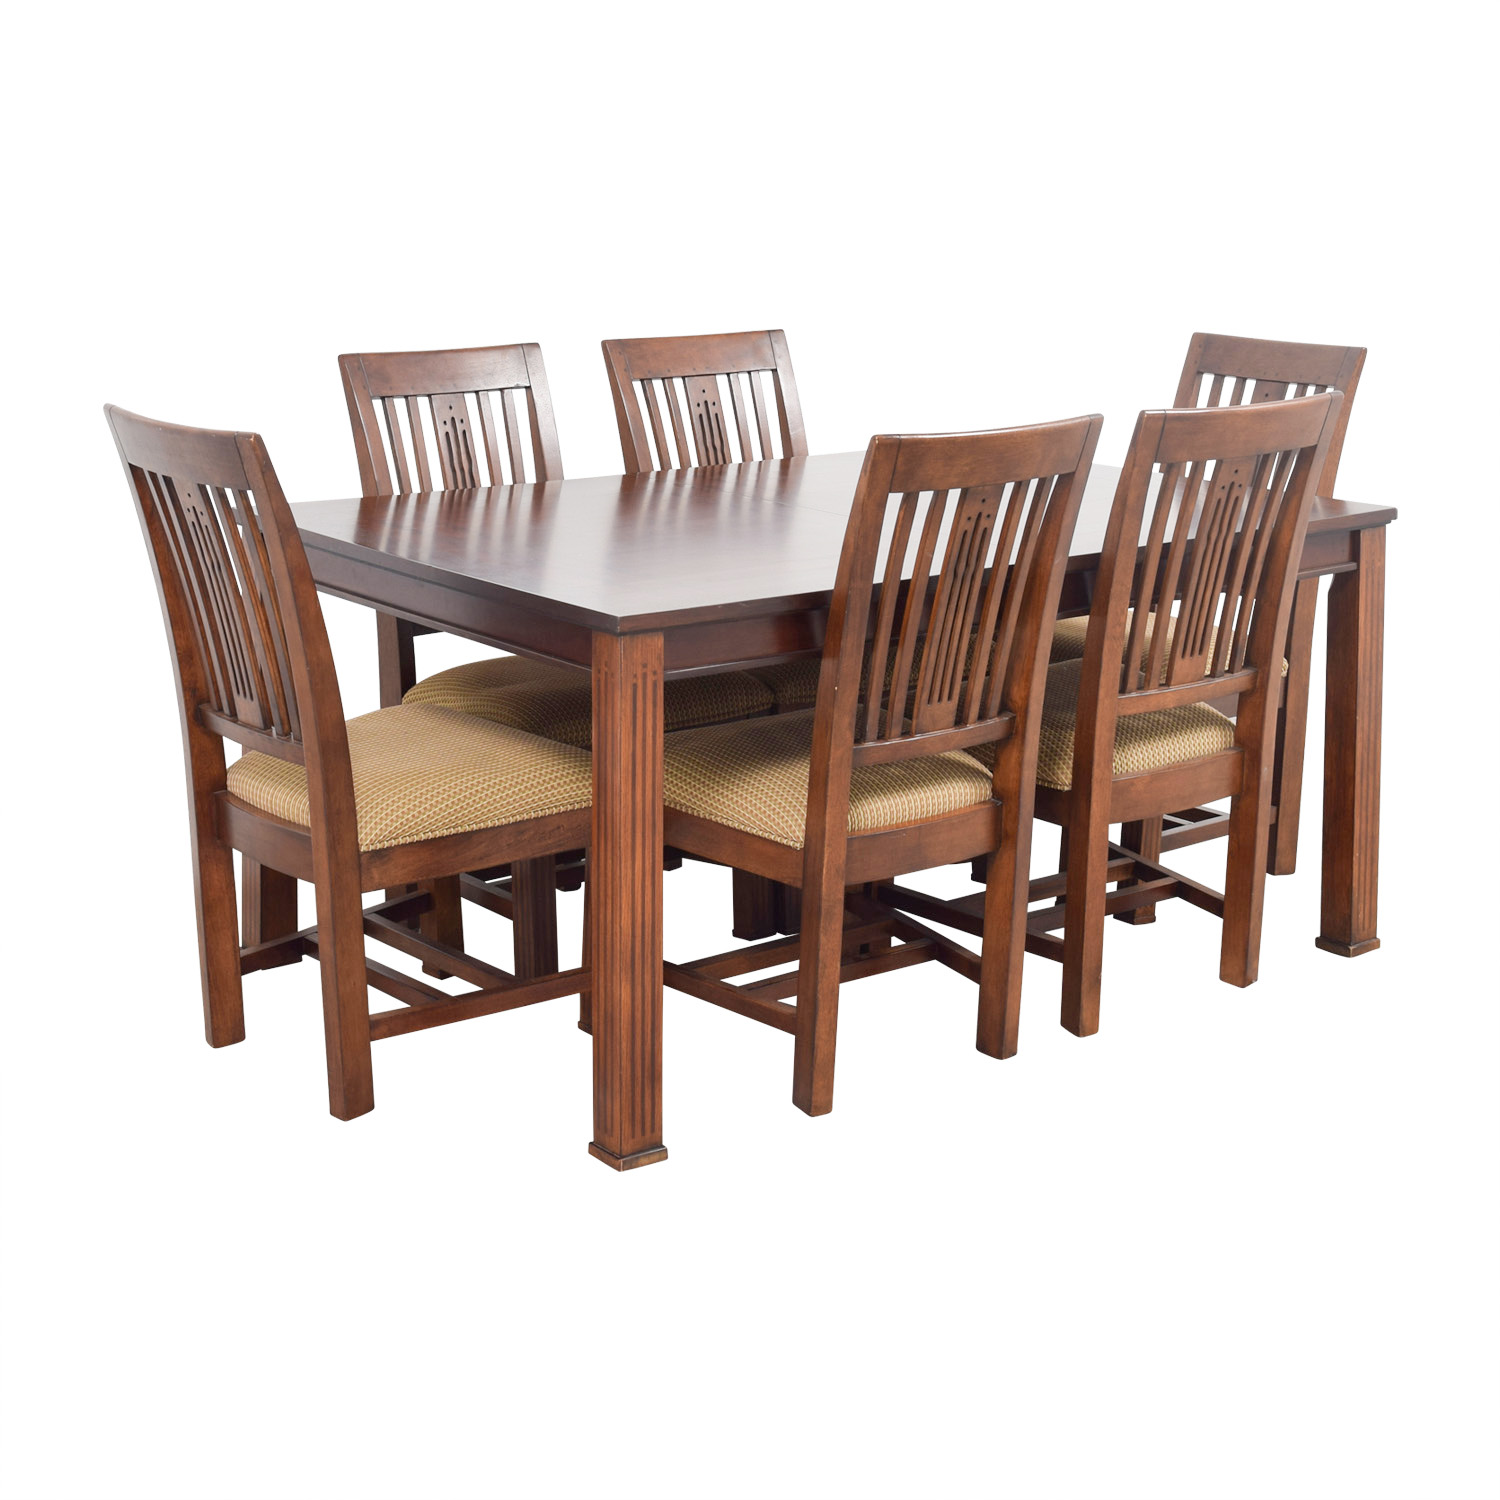 OFF Macy s Macy s Craft Mission Shaker Table and Chairs Tables